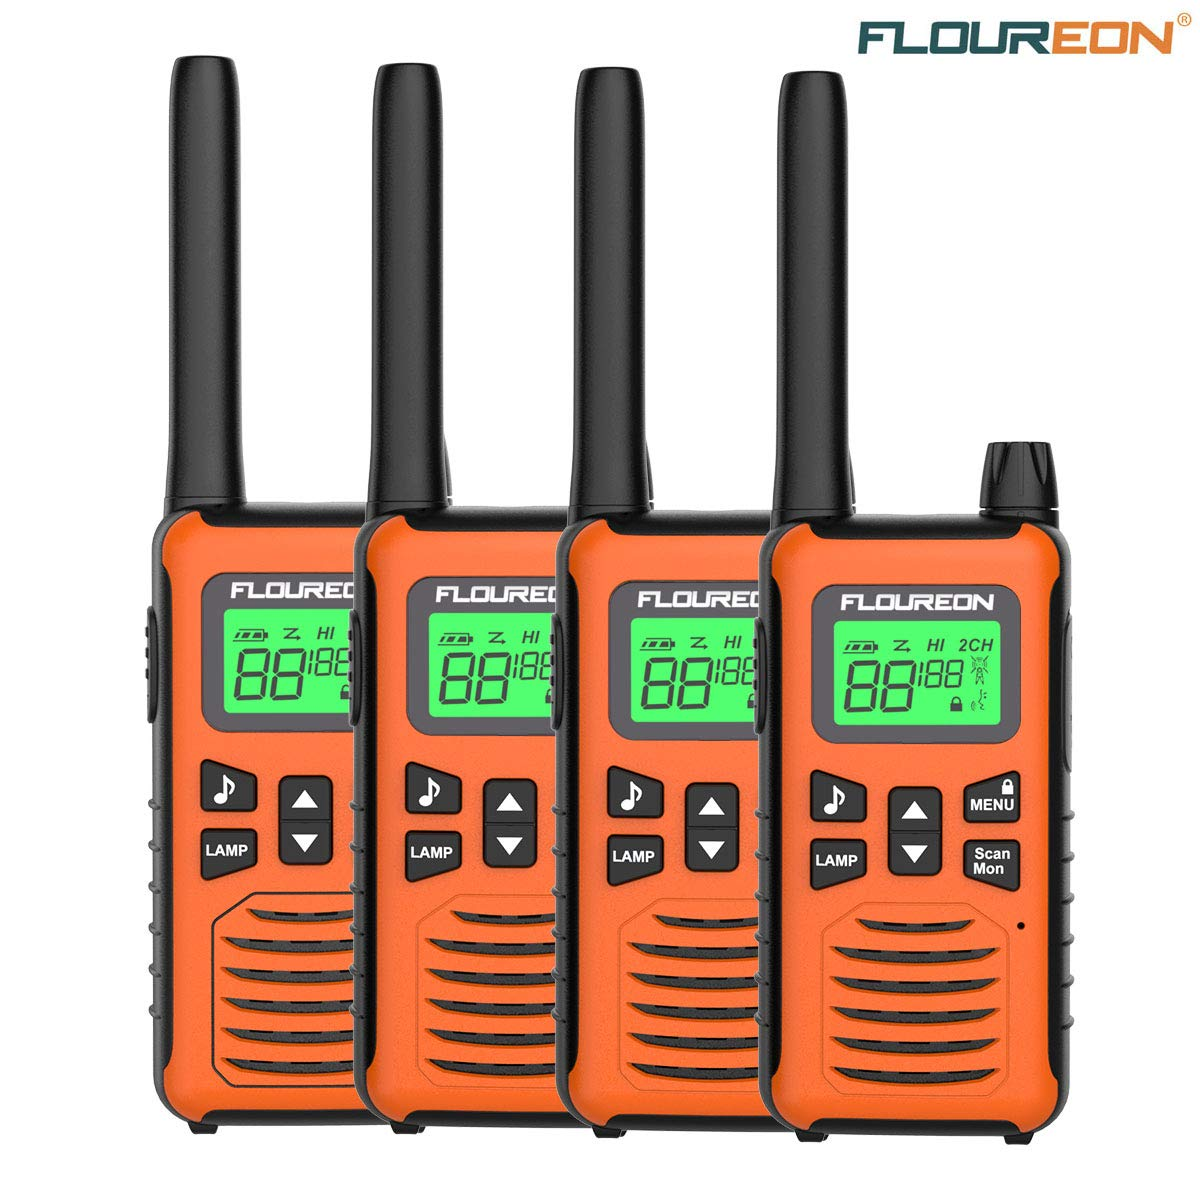 MAX 5000M USB Cable Charging Walkie Talkies 4 Pack for Outdoor Adventures Camping Hiking floureon Walkie Talkies for Adults Long Range Two Way Radio 22 Channel 3000M Orange